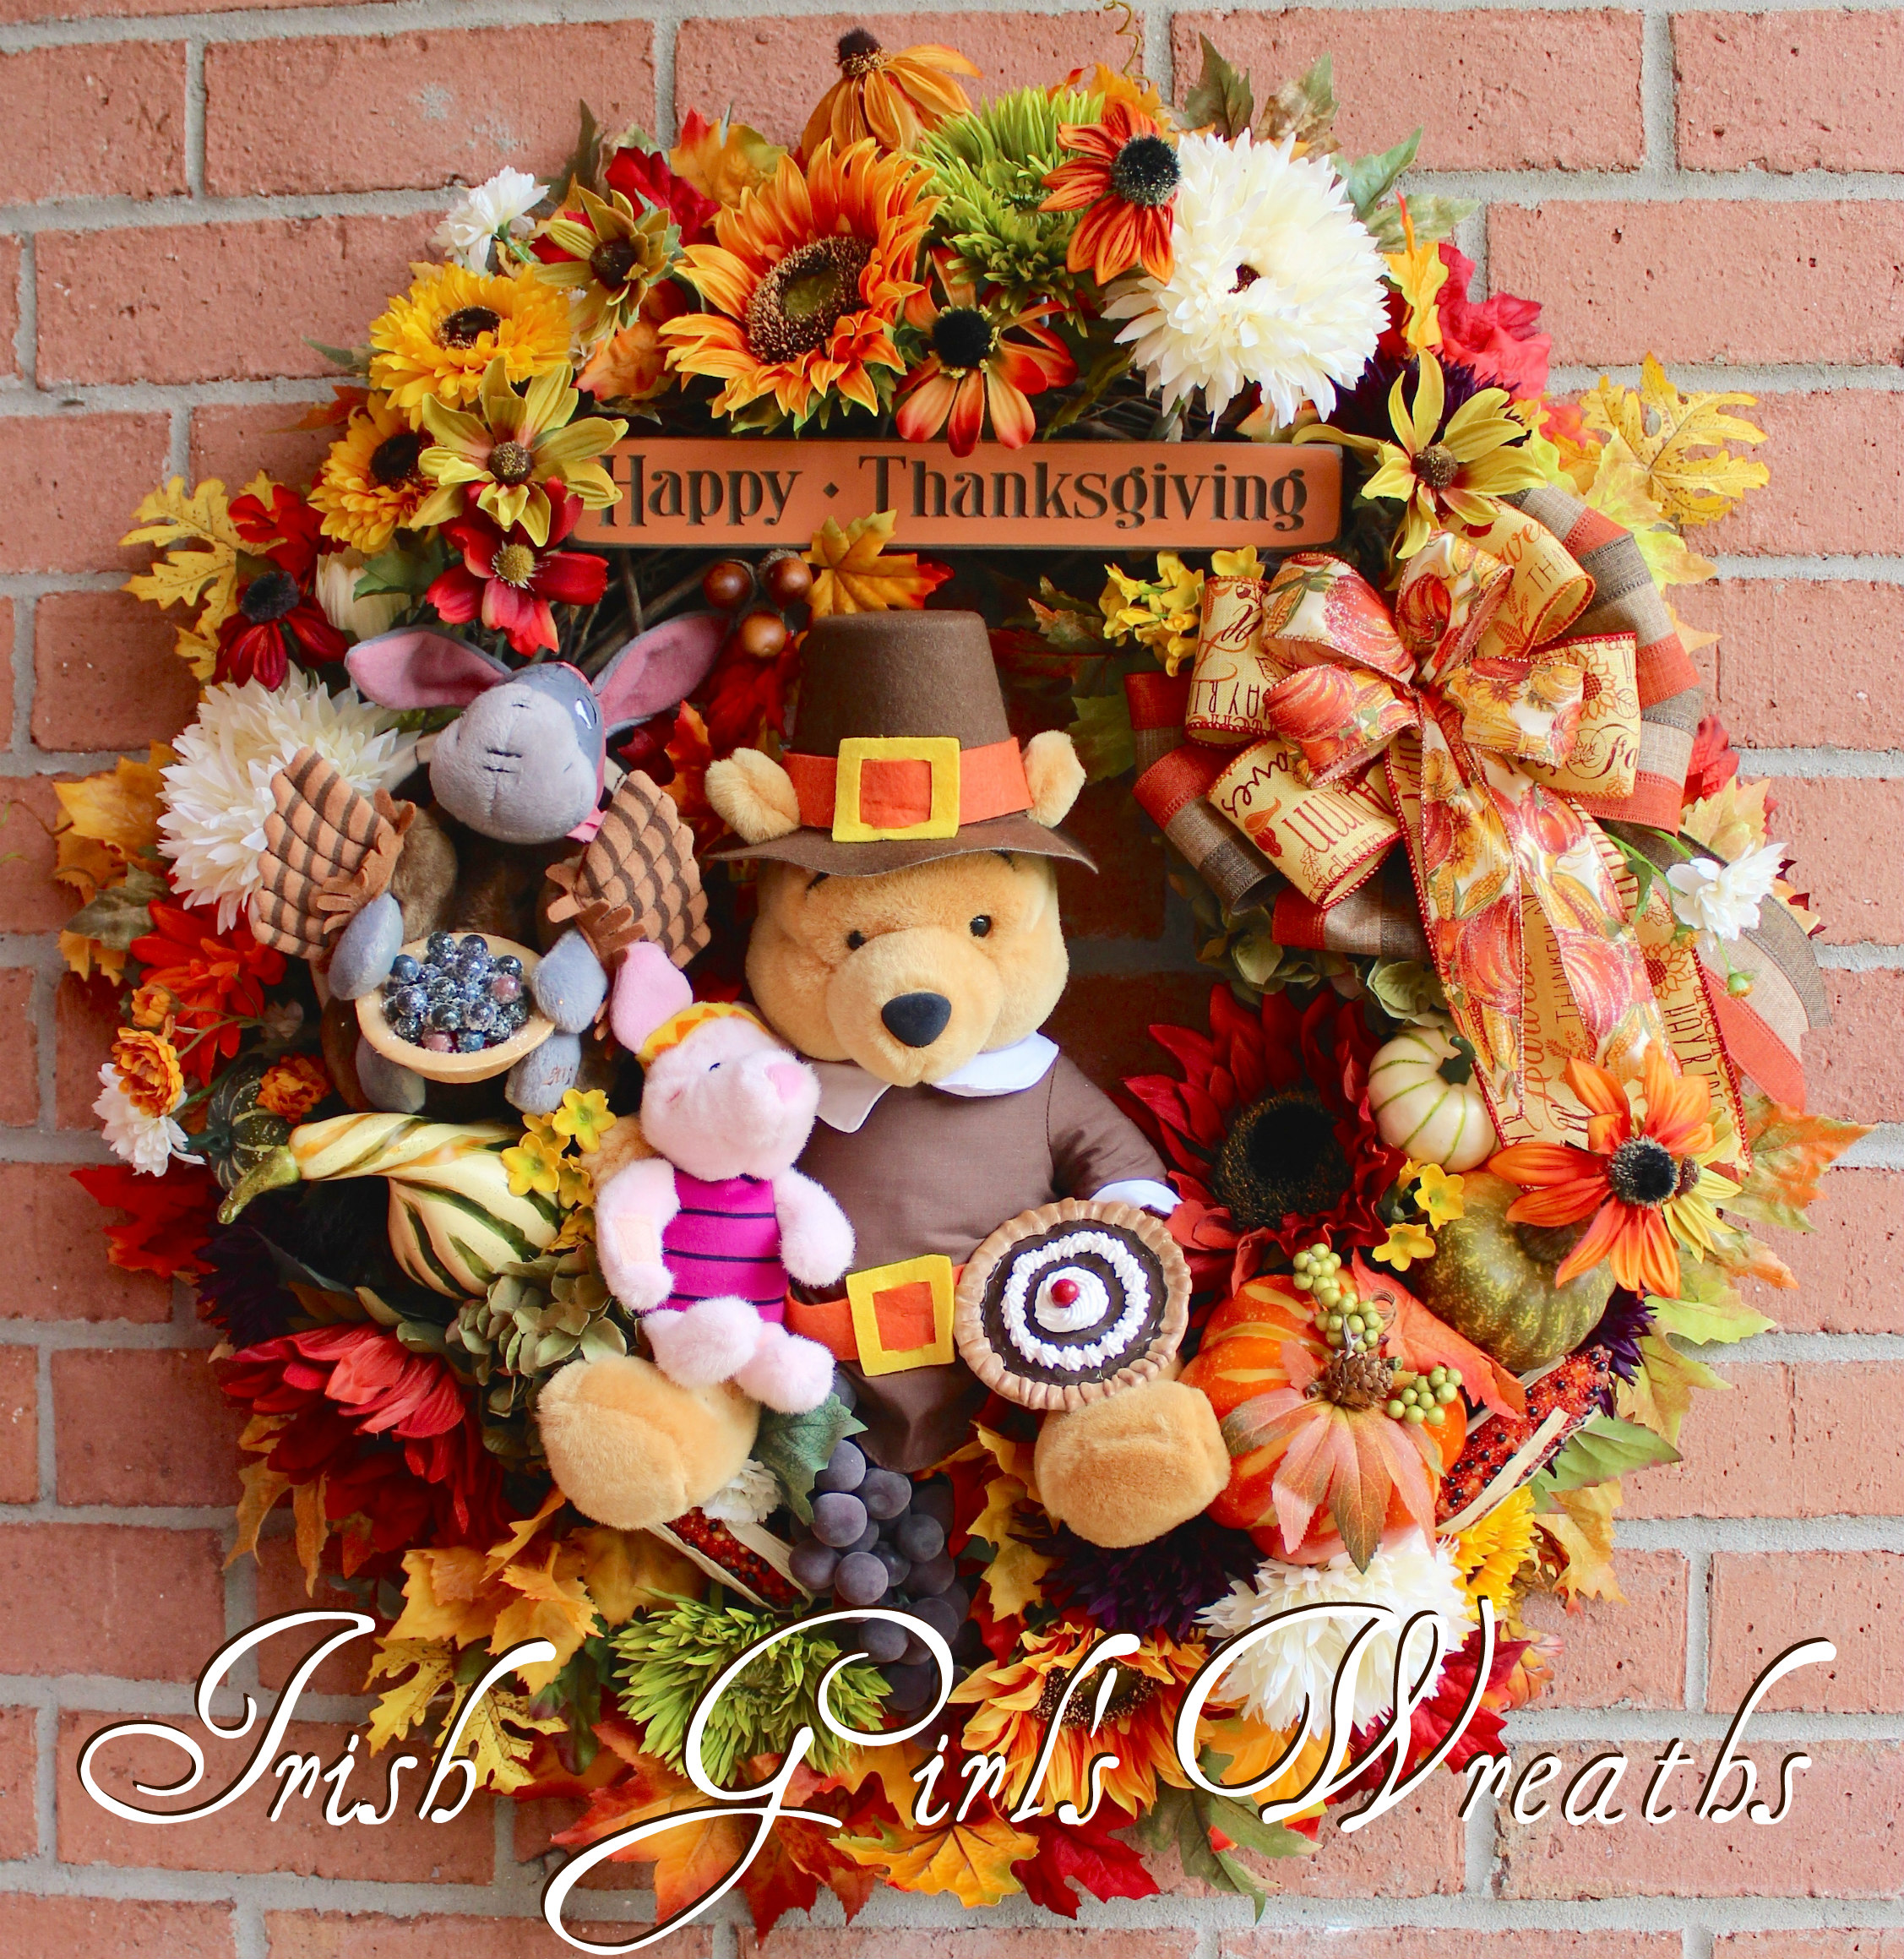 Winnie the Pooh and Friends Thanksgiving Harvest Wreath, Piglet, Eeyore, Pilgrim, Sunflower, Fall floral